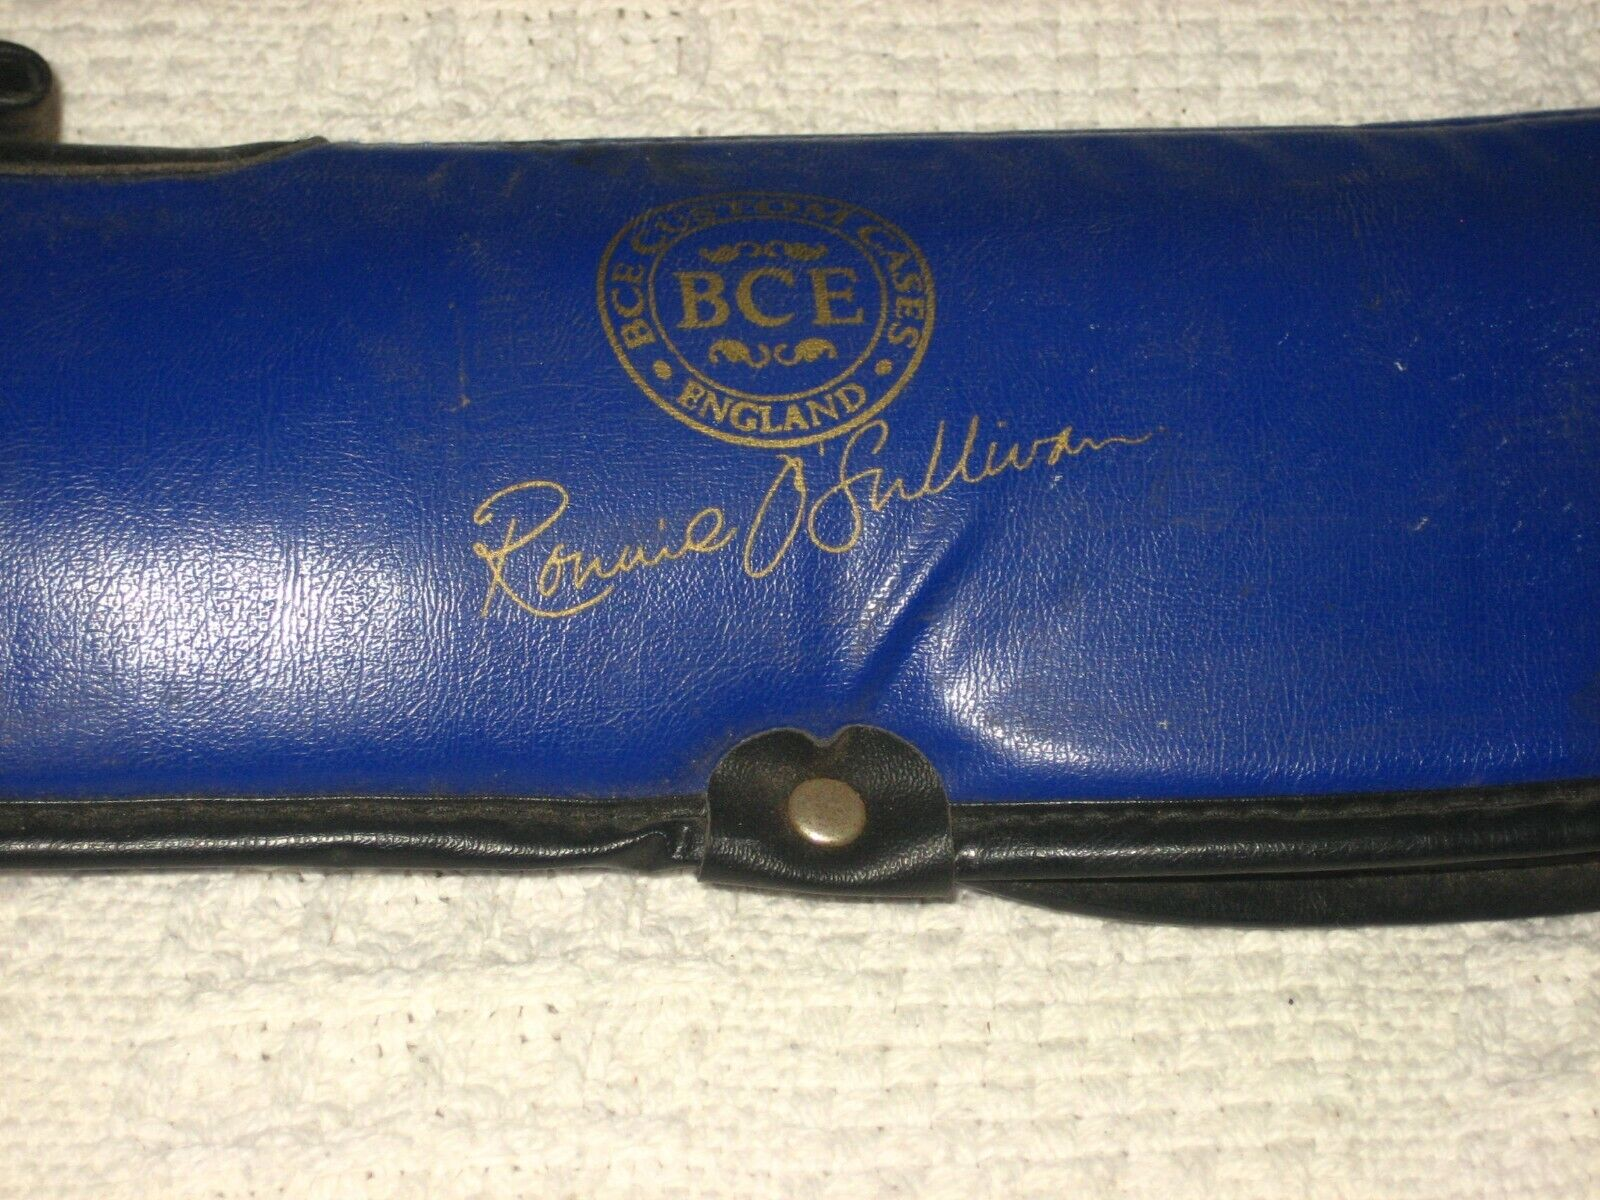 Pool or Snooker Cue In BCE Custom Case (by Ronnie O'Sullivan)